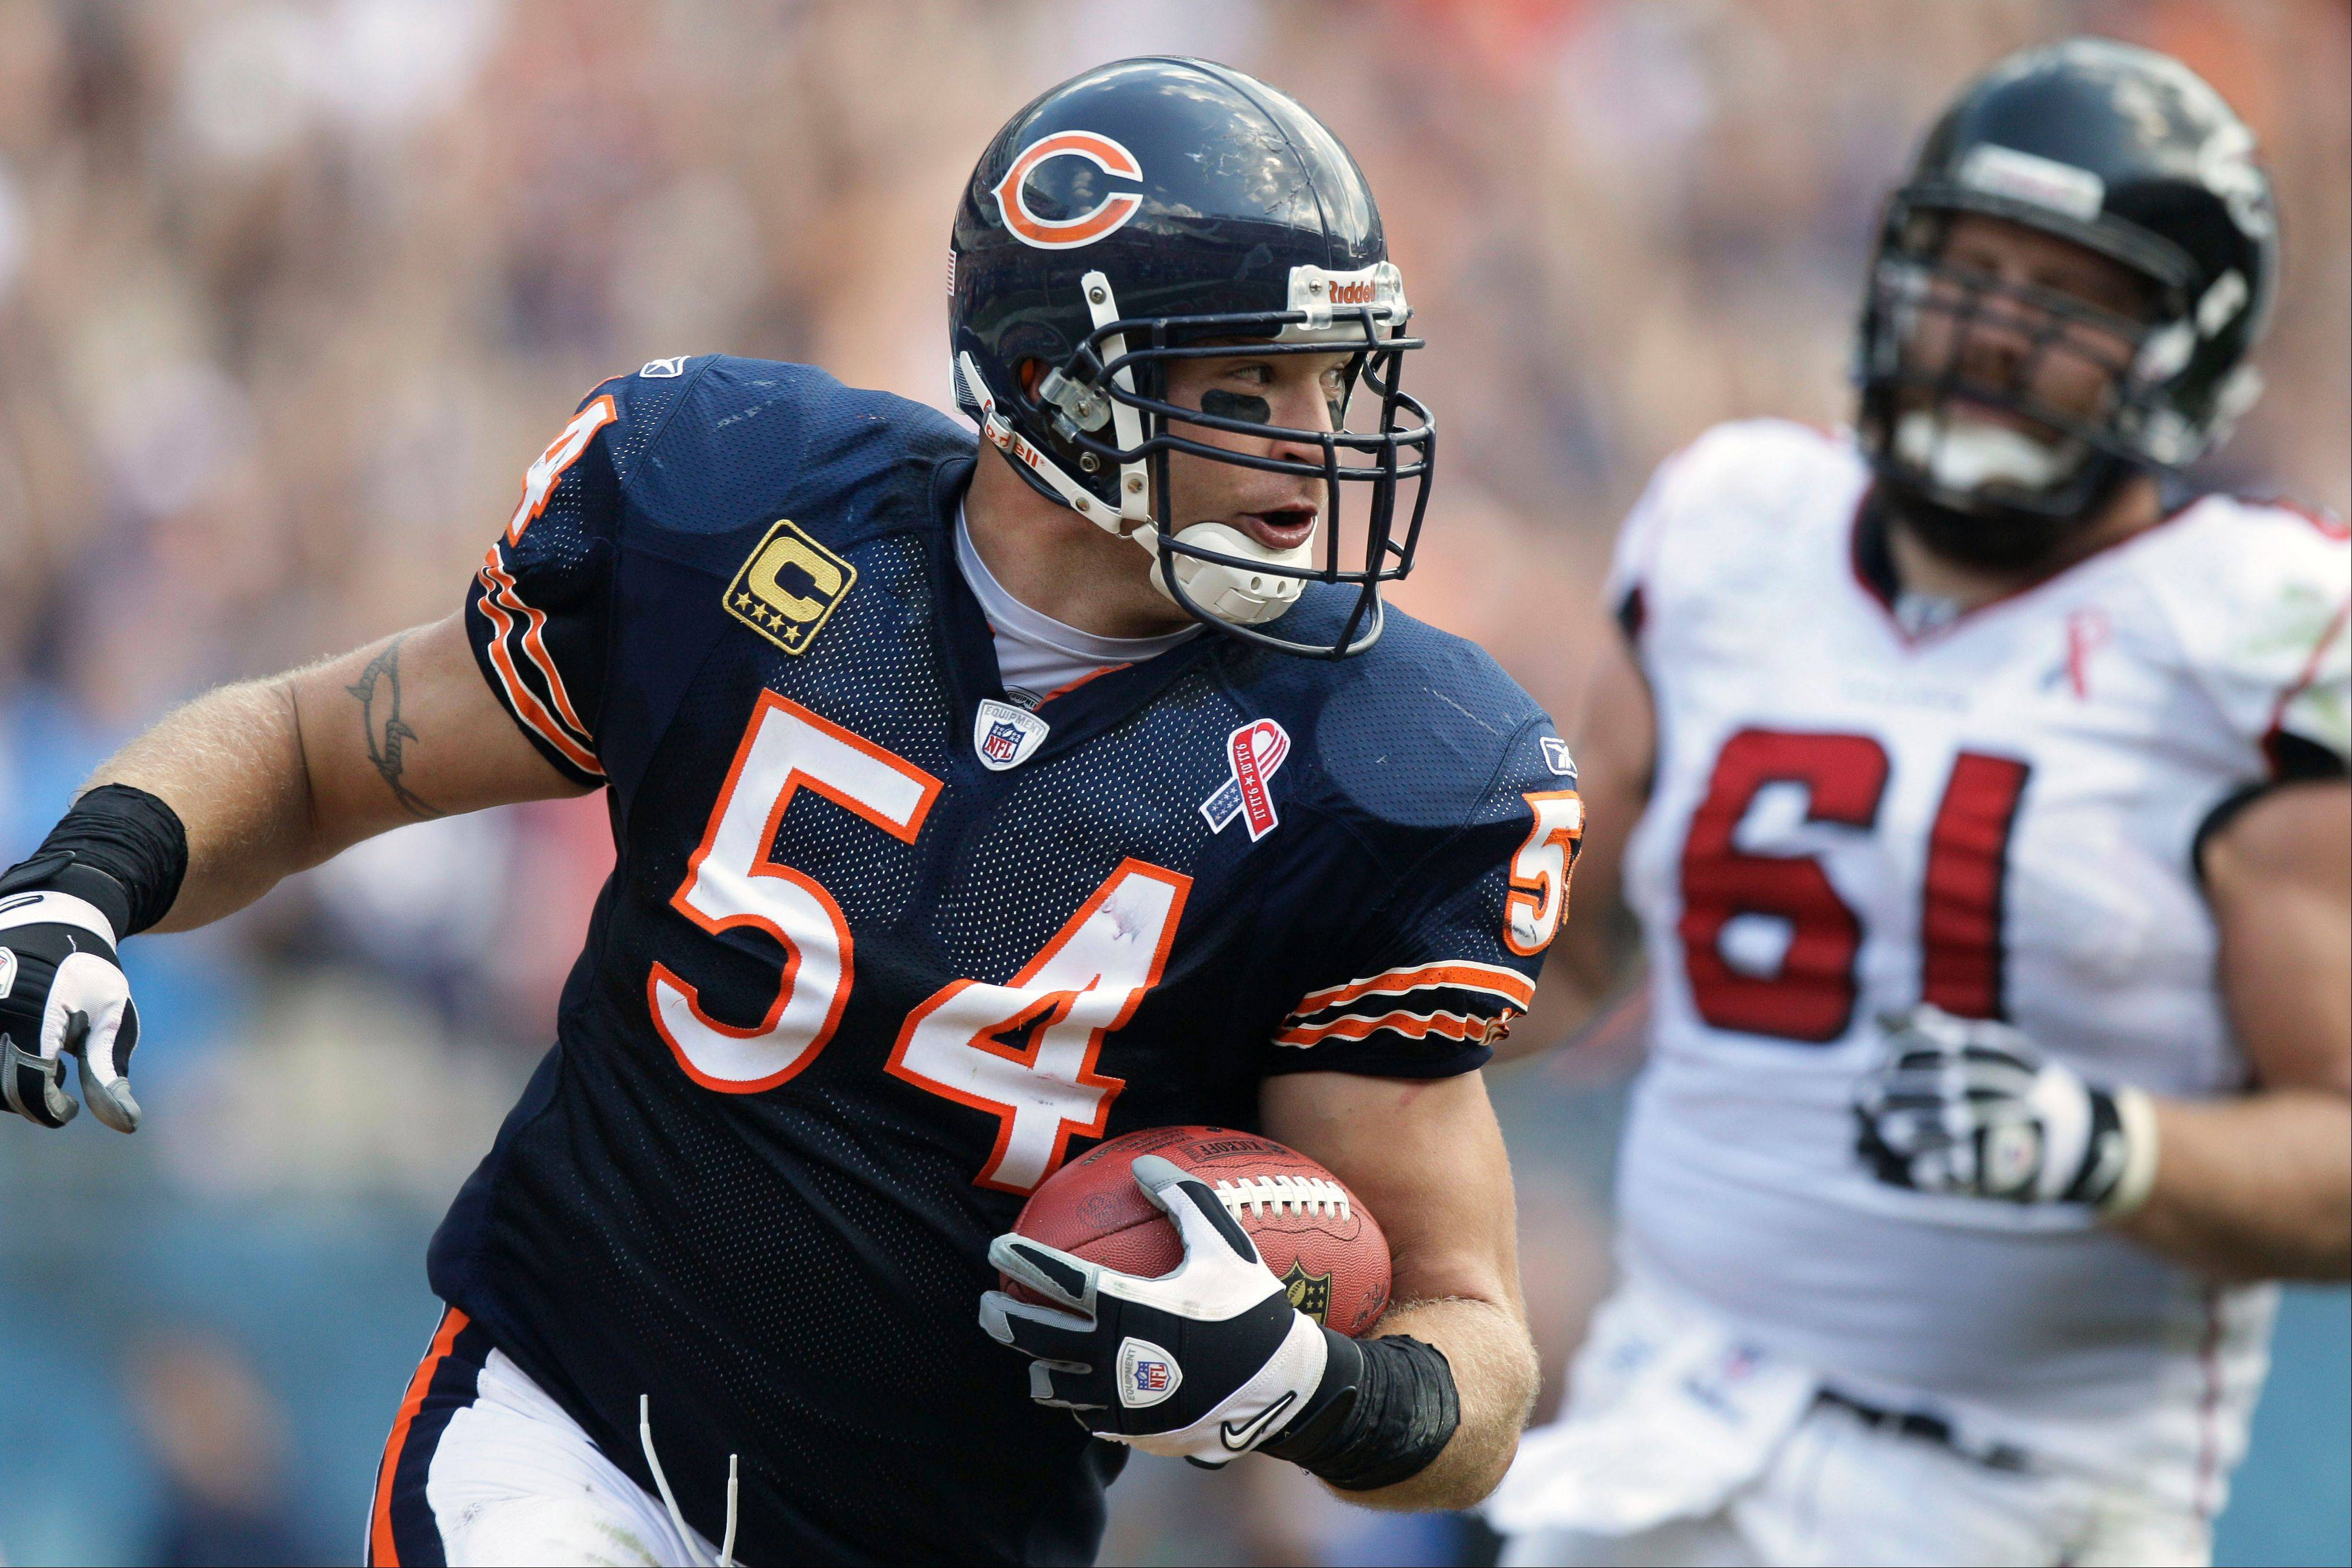 Bears linebacker Brian Urlacher, here scoring a touchdown after a fumble recovery against the Atlanta Falcons, returned to Halas Hall in Lake Forest on Thursday, according to team sources. He is expected to play on Sunday at New Orleans